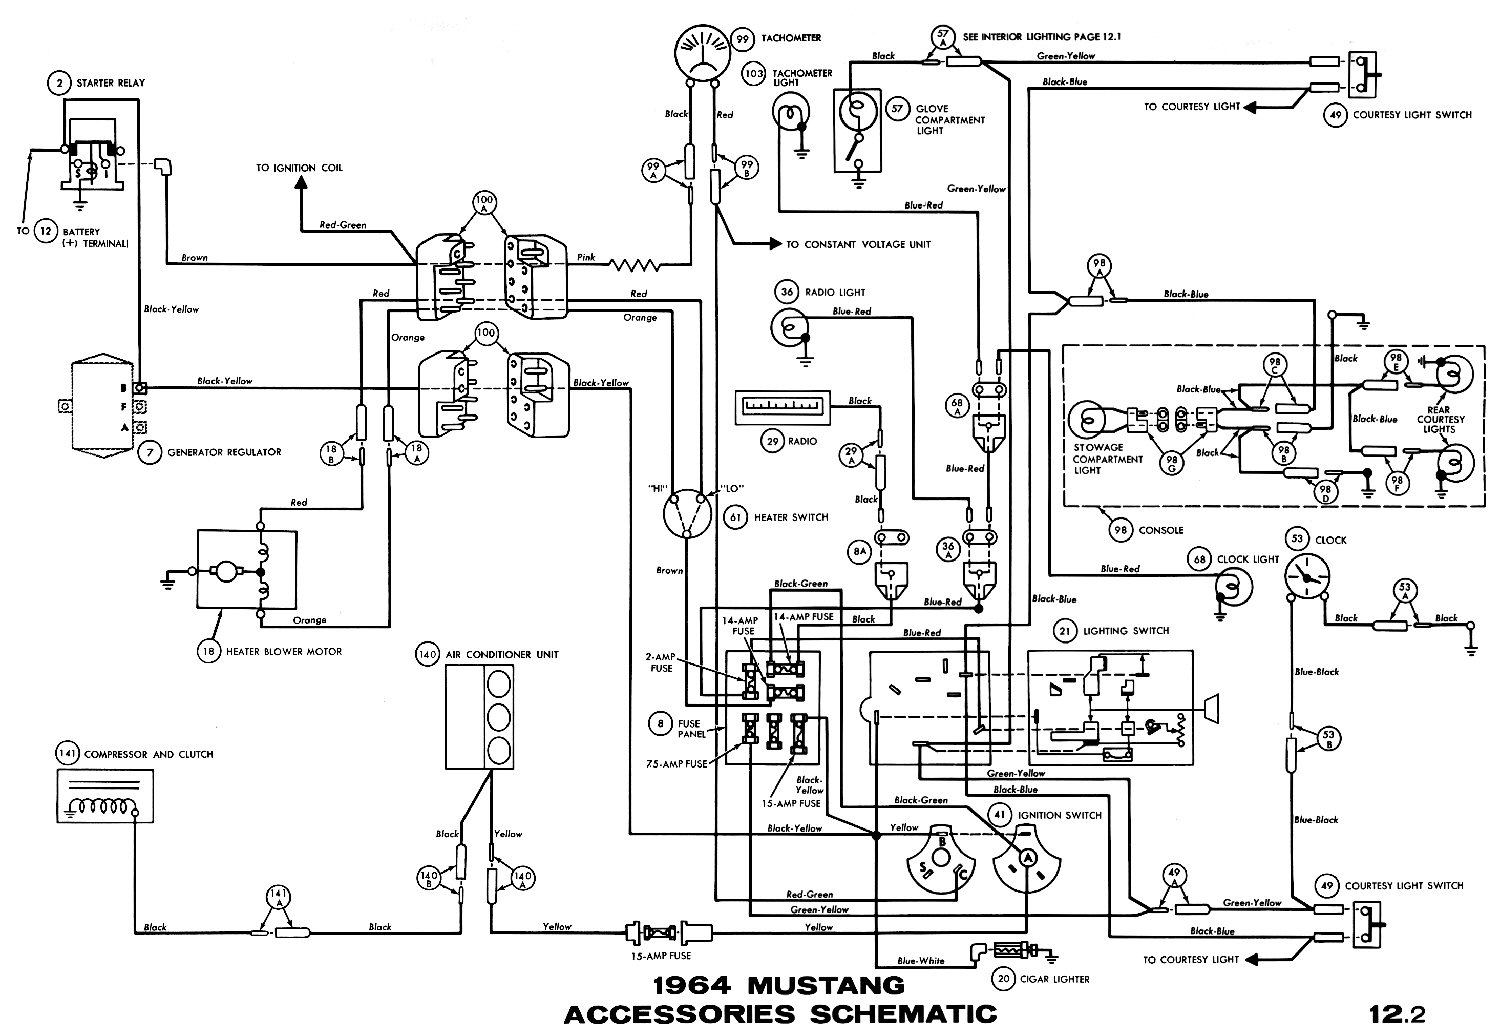 1964m 1964 mustang wiring diagrams average joe restoration 65 mustang ignition wiring diagram at mifinder.co